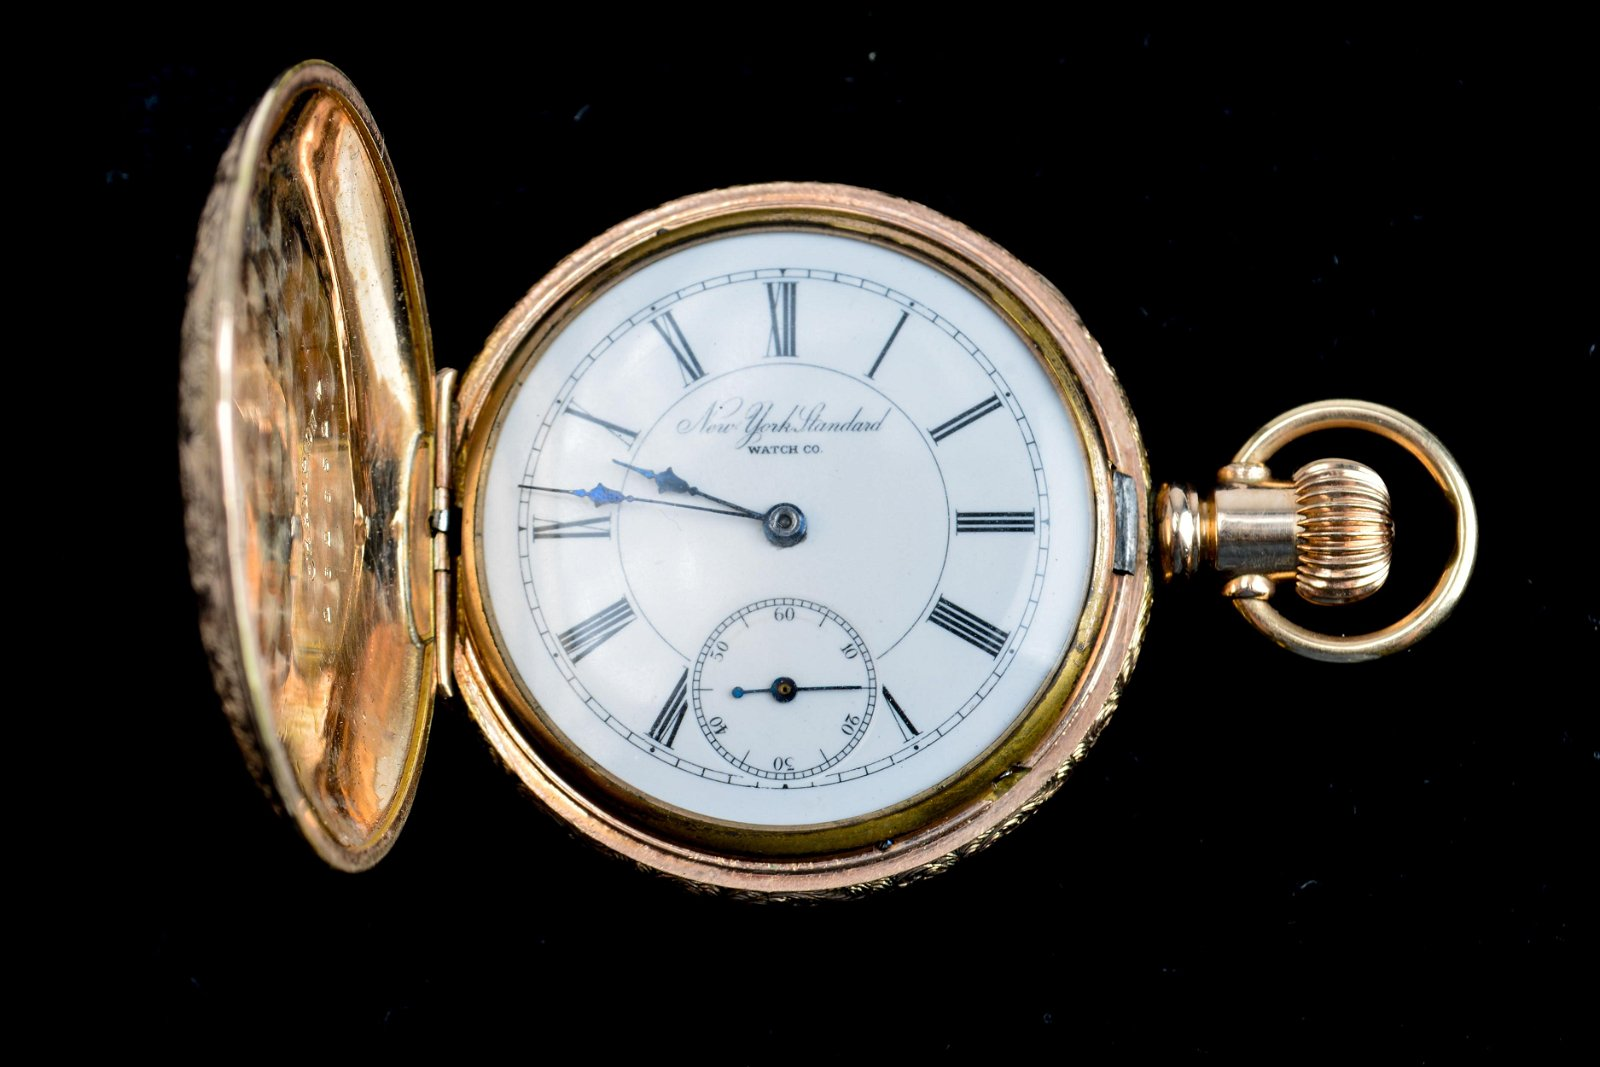 New York Standard Co. Gold-Plated Pocket Watch